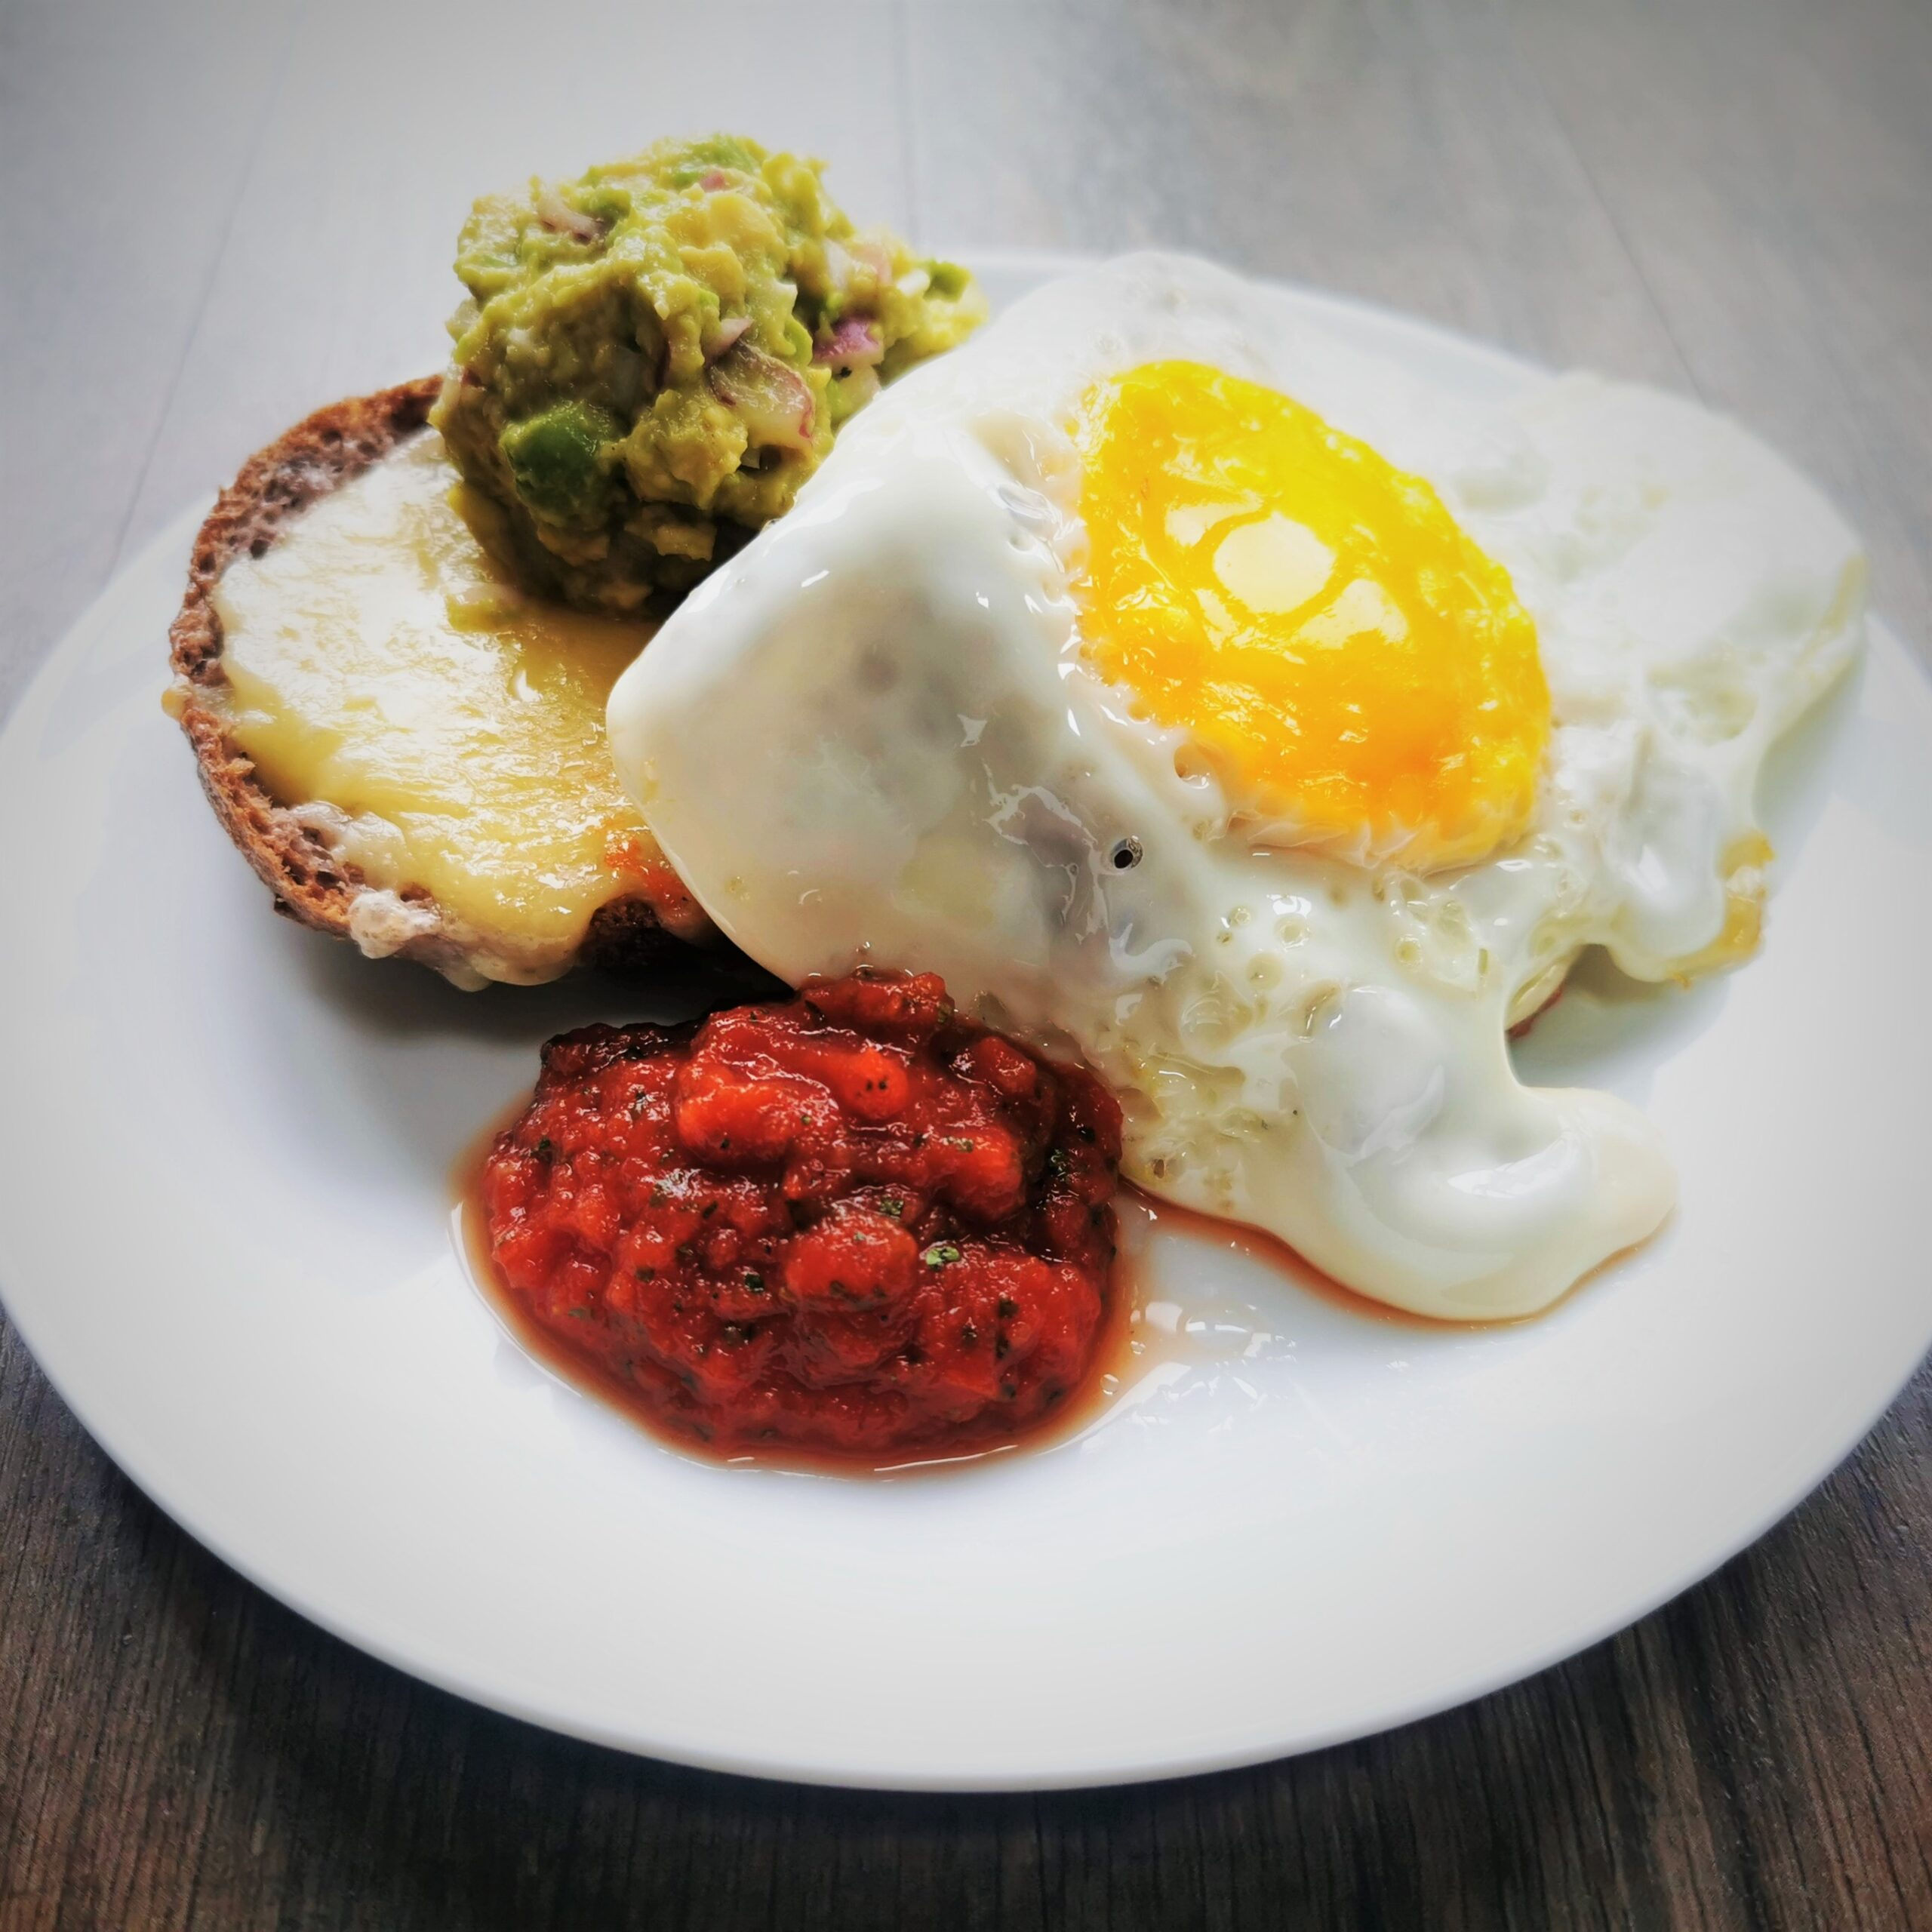 Golden yolked fried egg on a low carb roll with salsa and guacamole on a white plate placed on a wooden surface